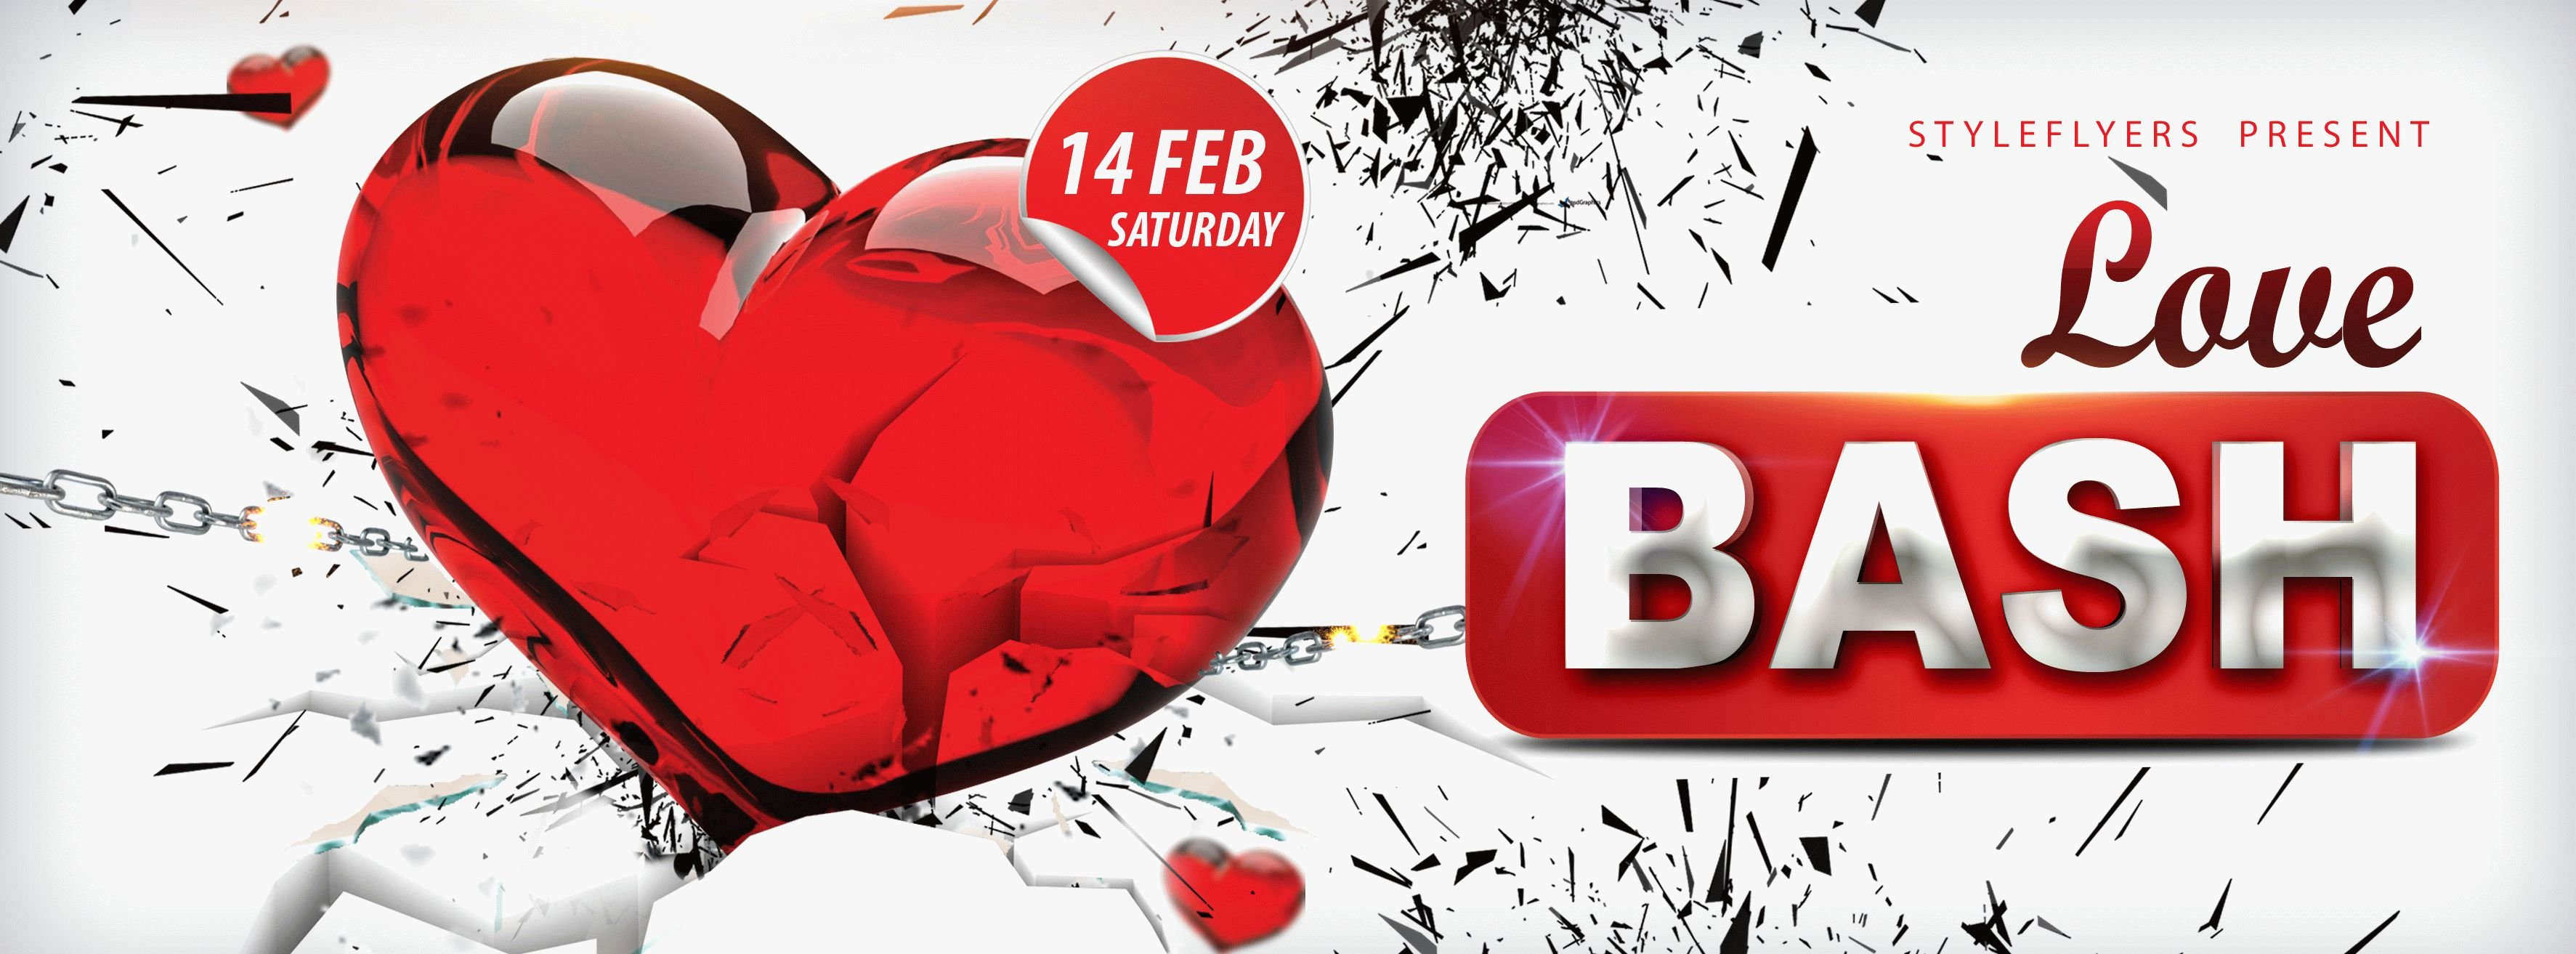 Love Bash PSD Flyer Template